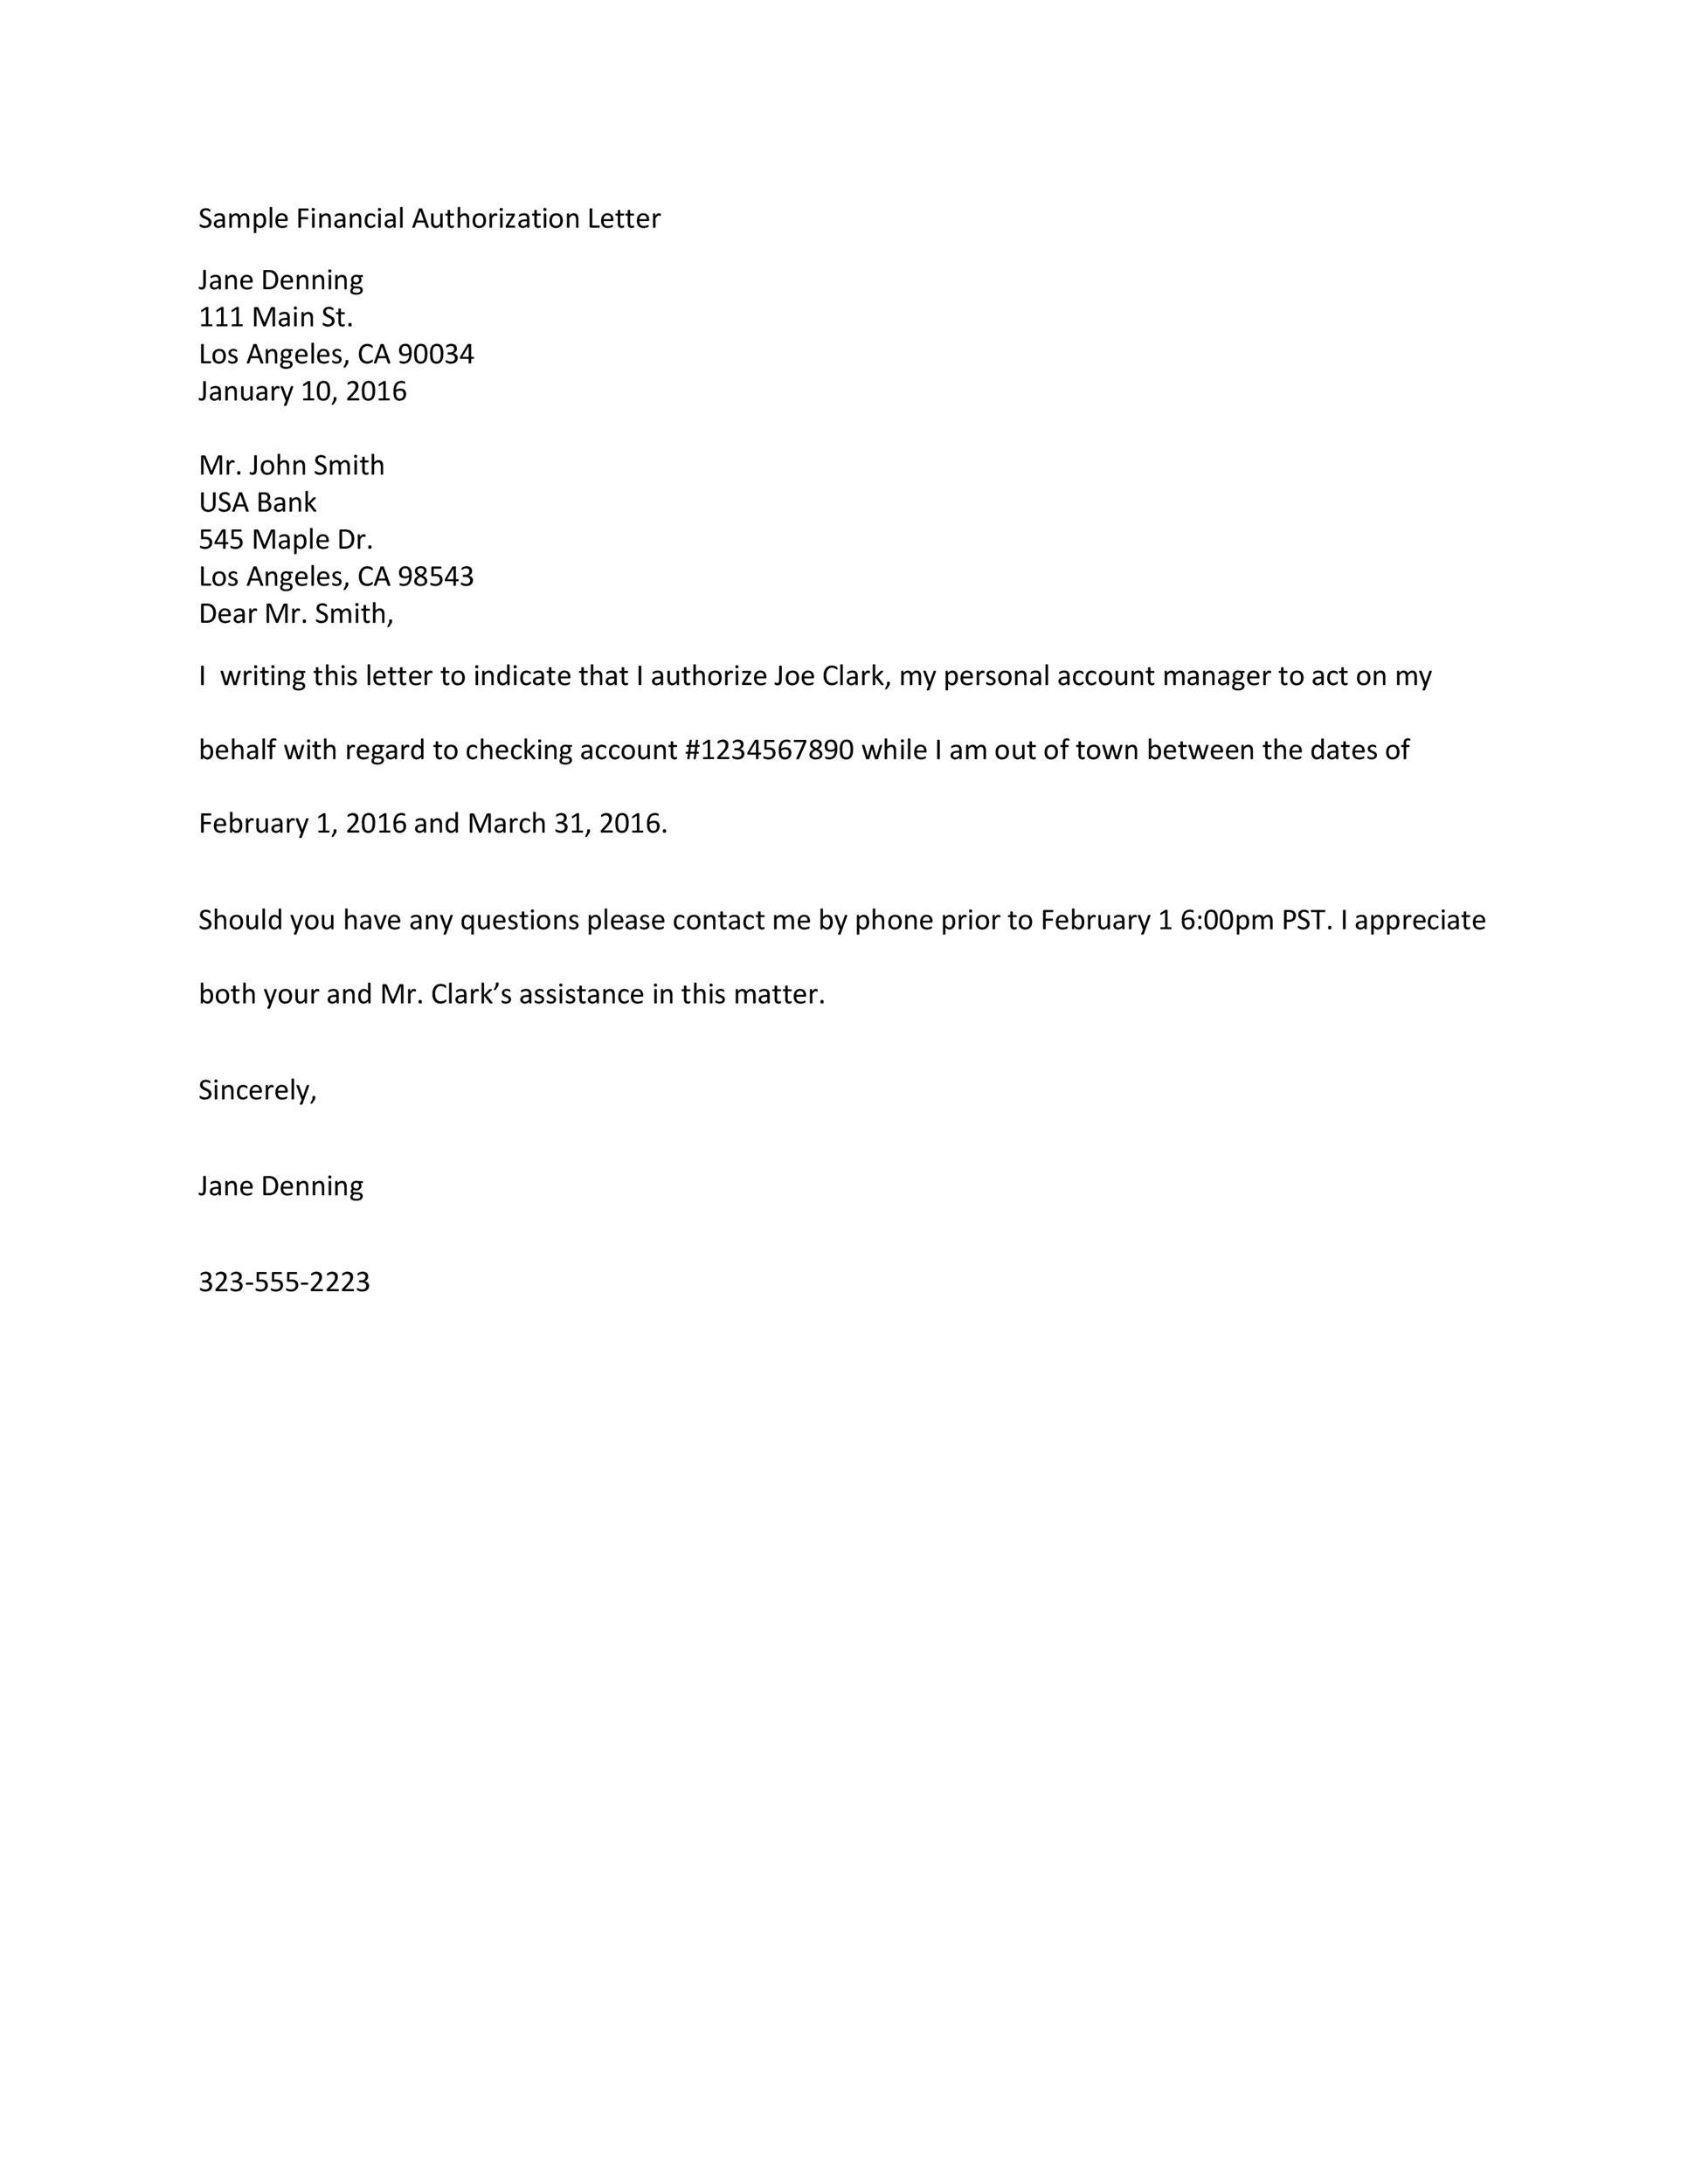 Sample Recommendation Request Letter. Requesting-A-Letter-Of